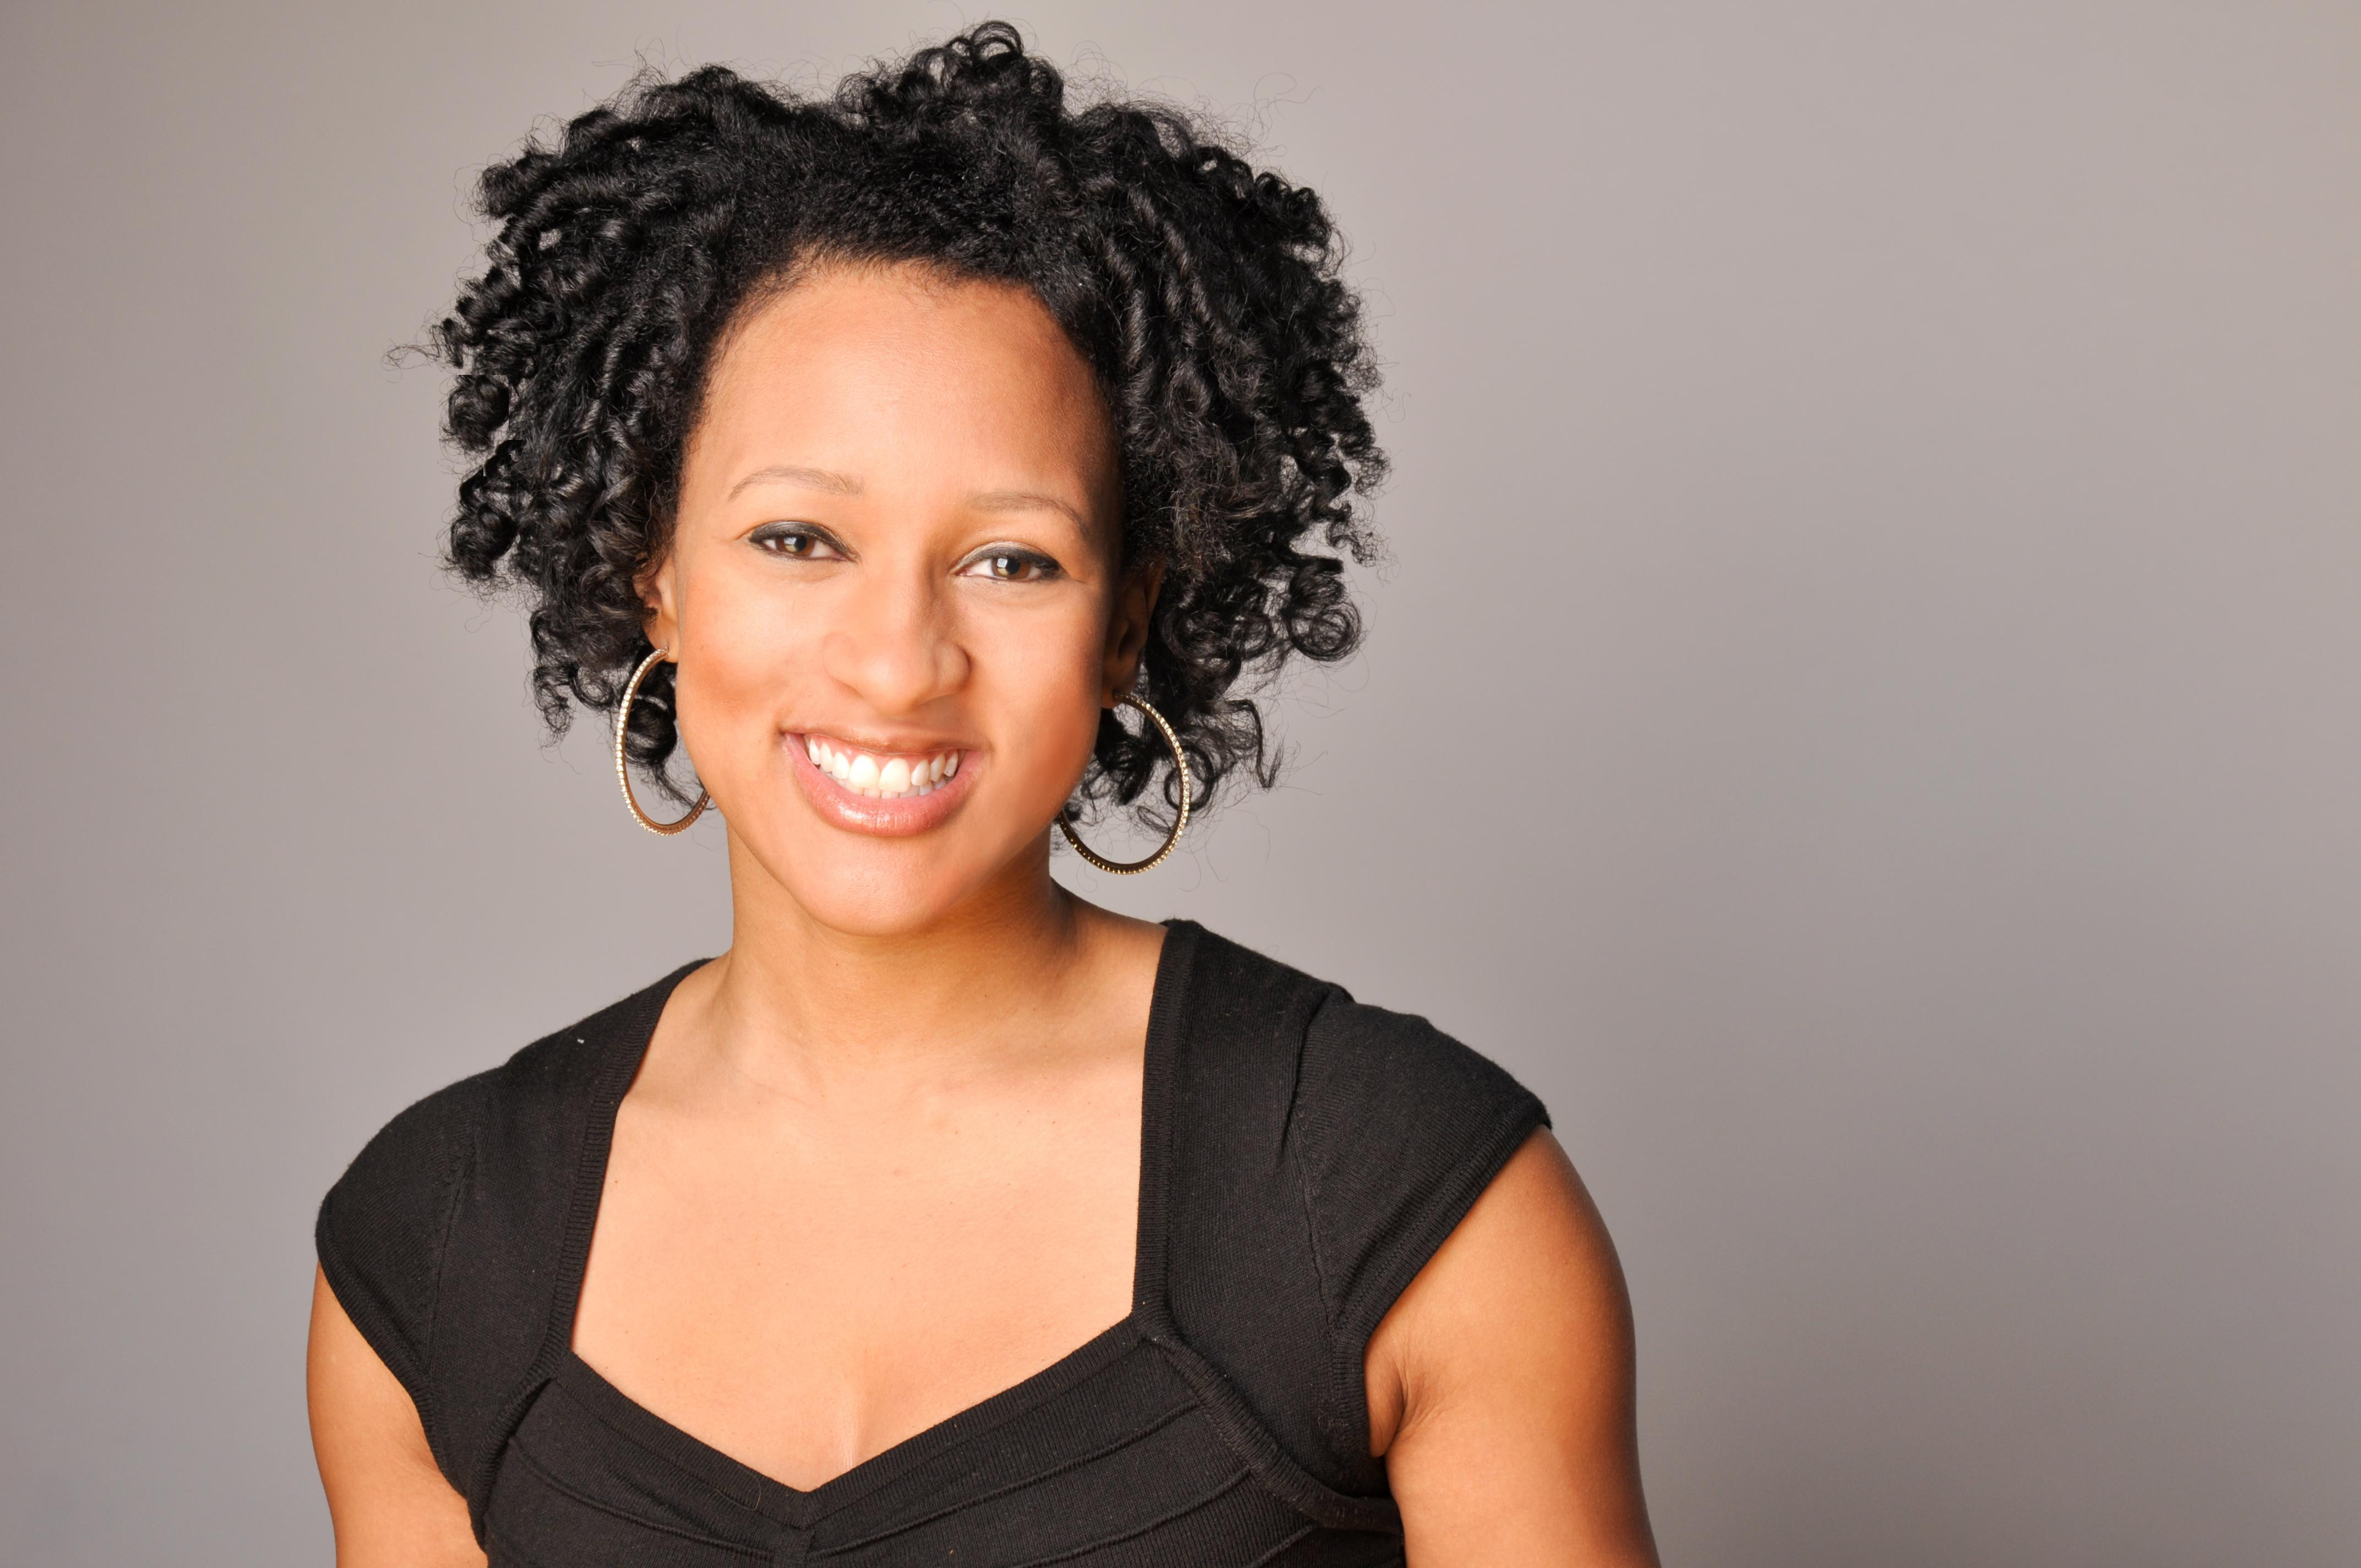 Best ideas about Black Girls Natural Hairstyles . Save or Pin 30 Impressive Short Natural Hairstyles For Black Women Now.